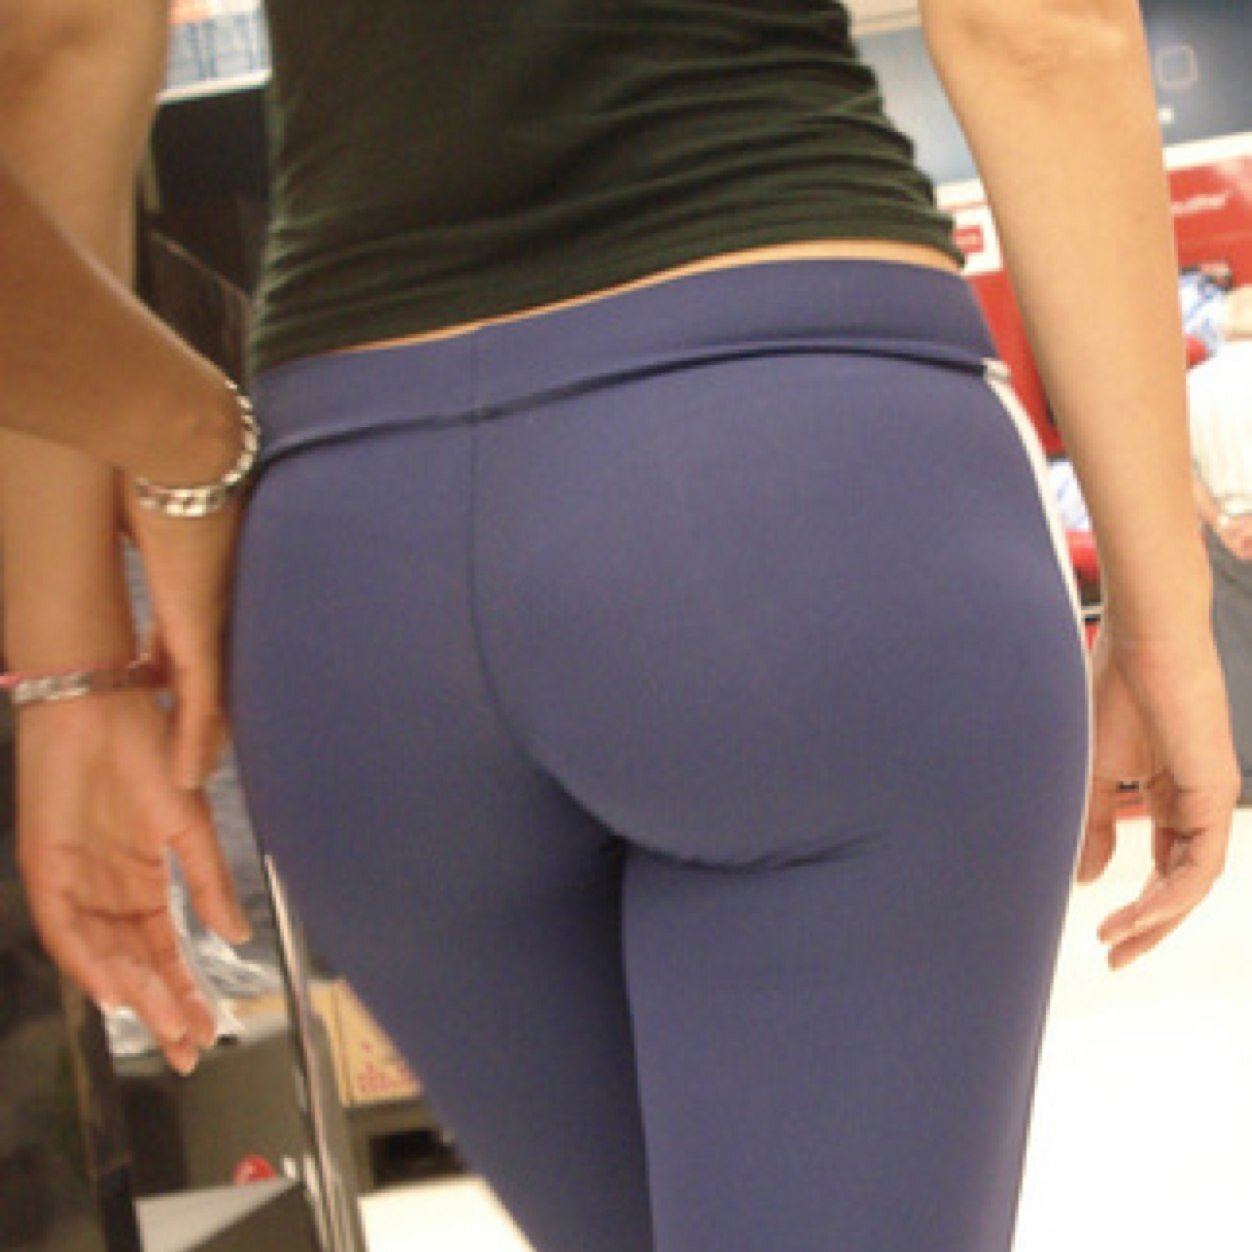 DOLLIE: Twerkin in yoga pants